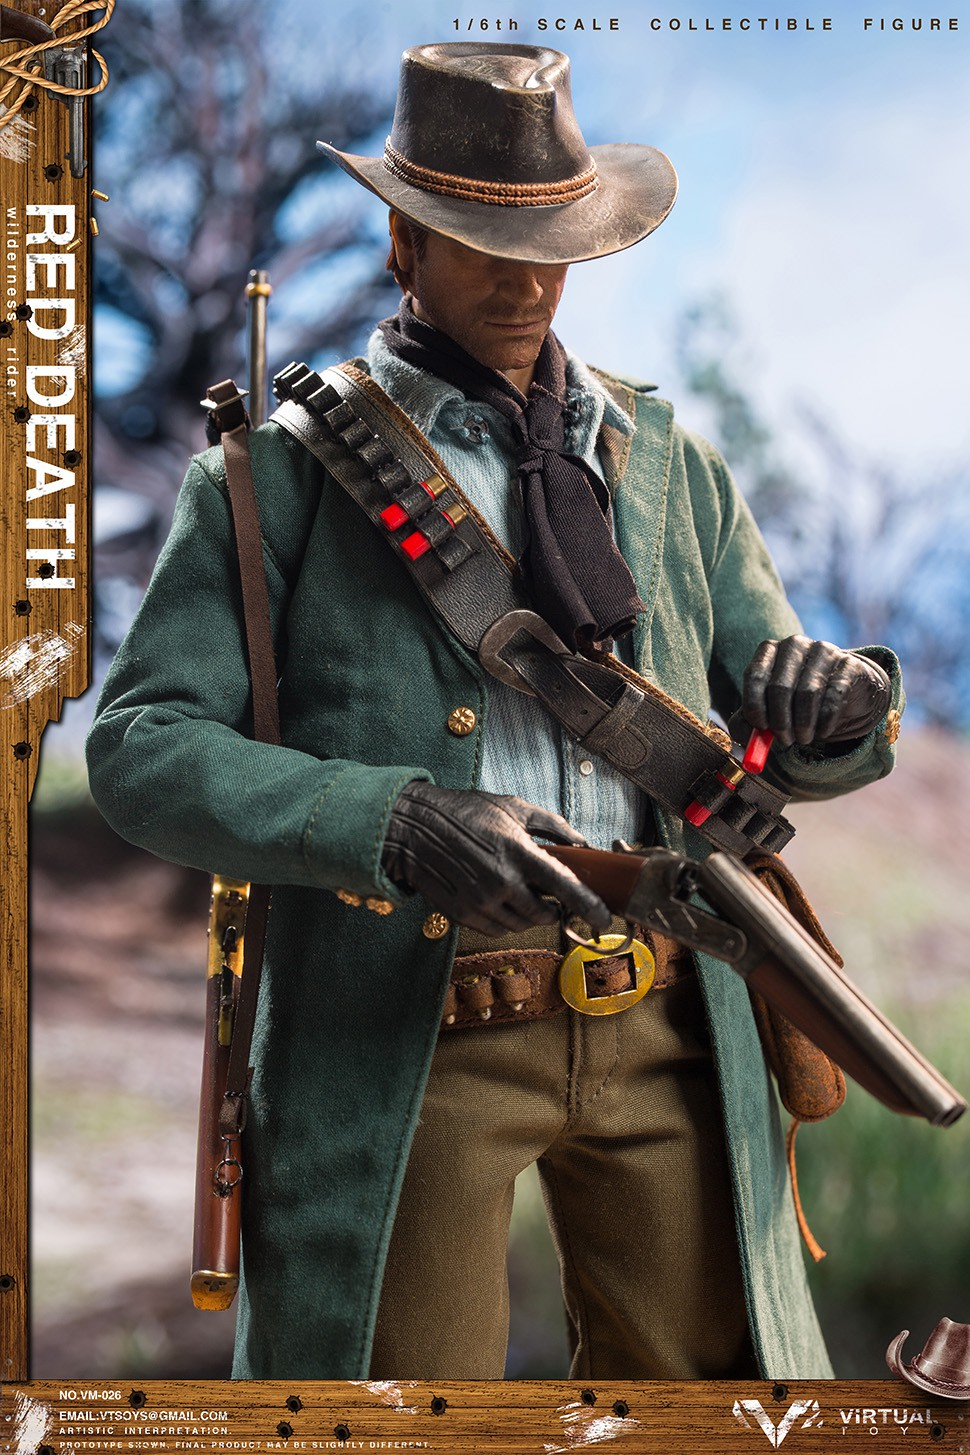 cowboy - NEW PRODUCT: VTS TOYS VM-026 Wilderness Rider 1/6 Figure 9283